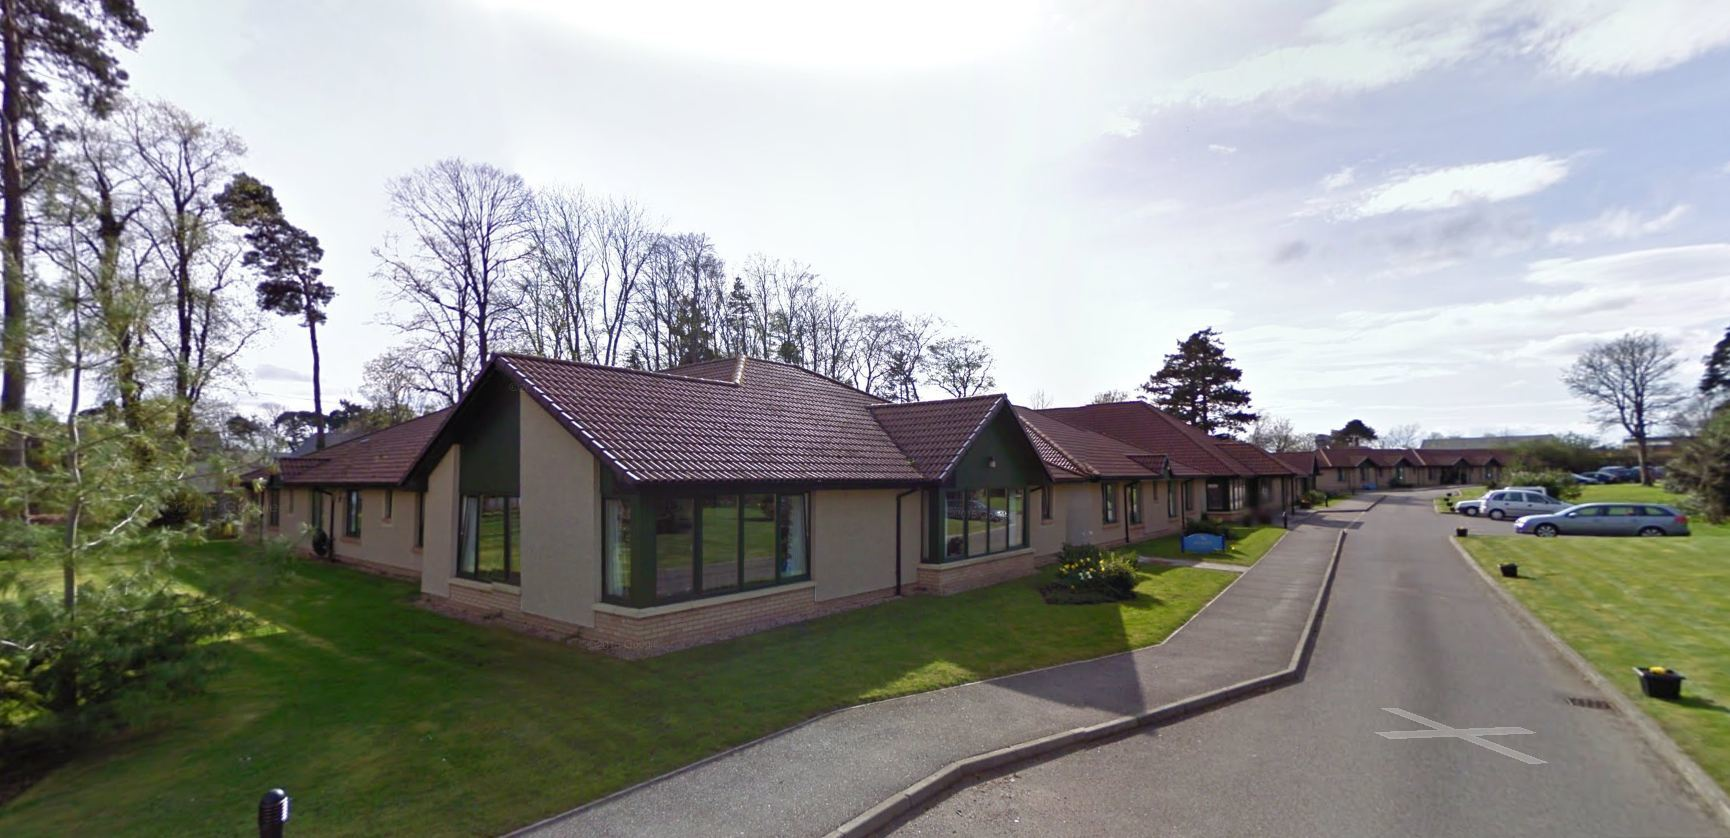 Nairn Care Homes